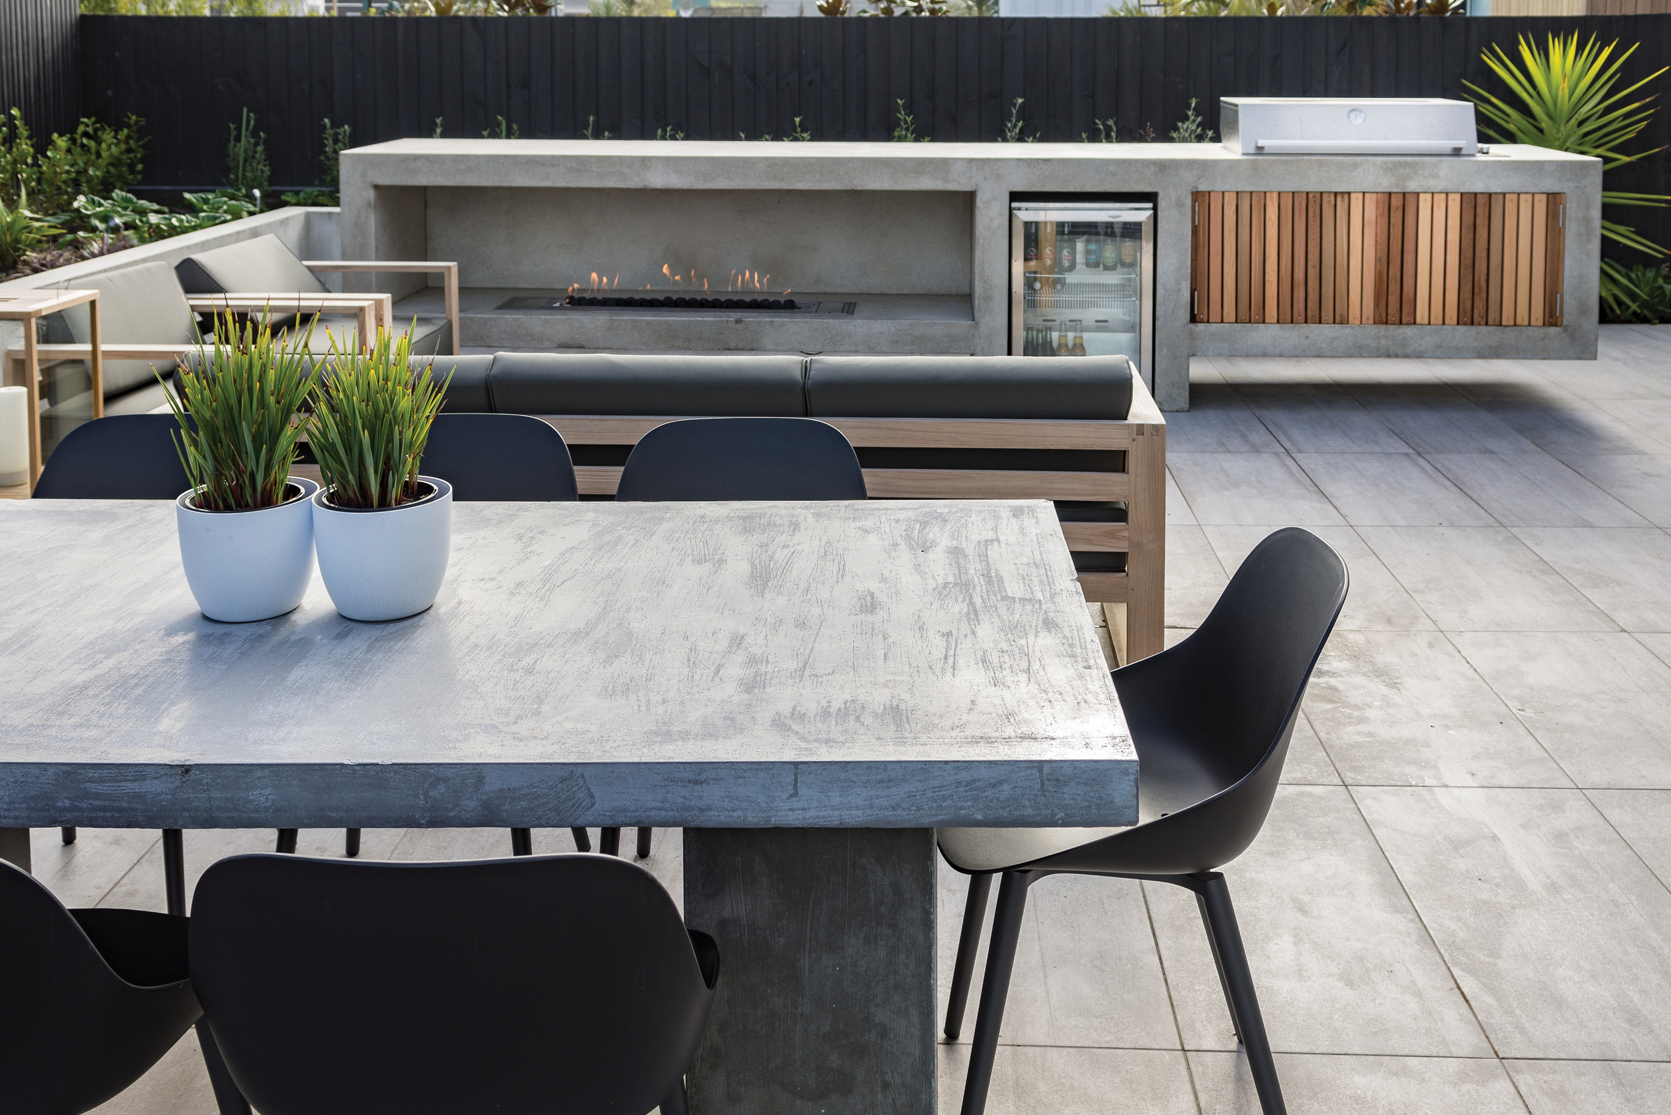 OUTDOOR LIVING:  Designed by Kamo Marsh Landscape Architects, the outdoor area combines technology, concrete structure and coastal planting, to create a fabulous sheltered space for entertaining.